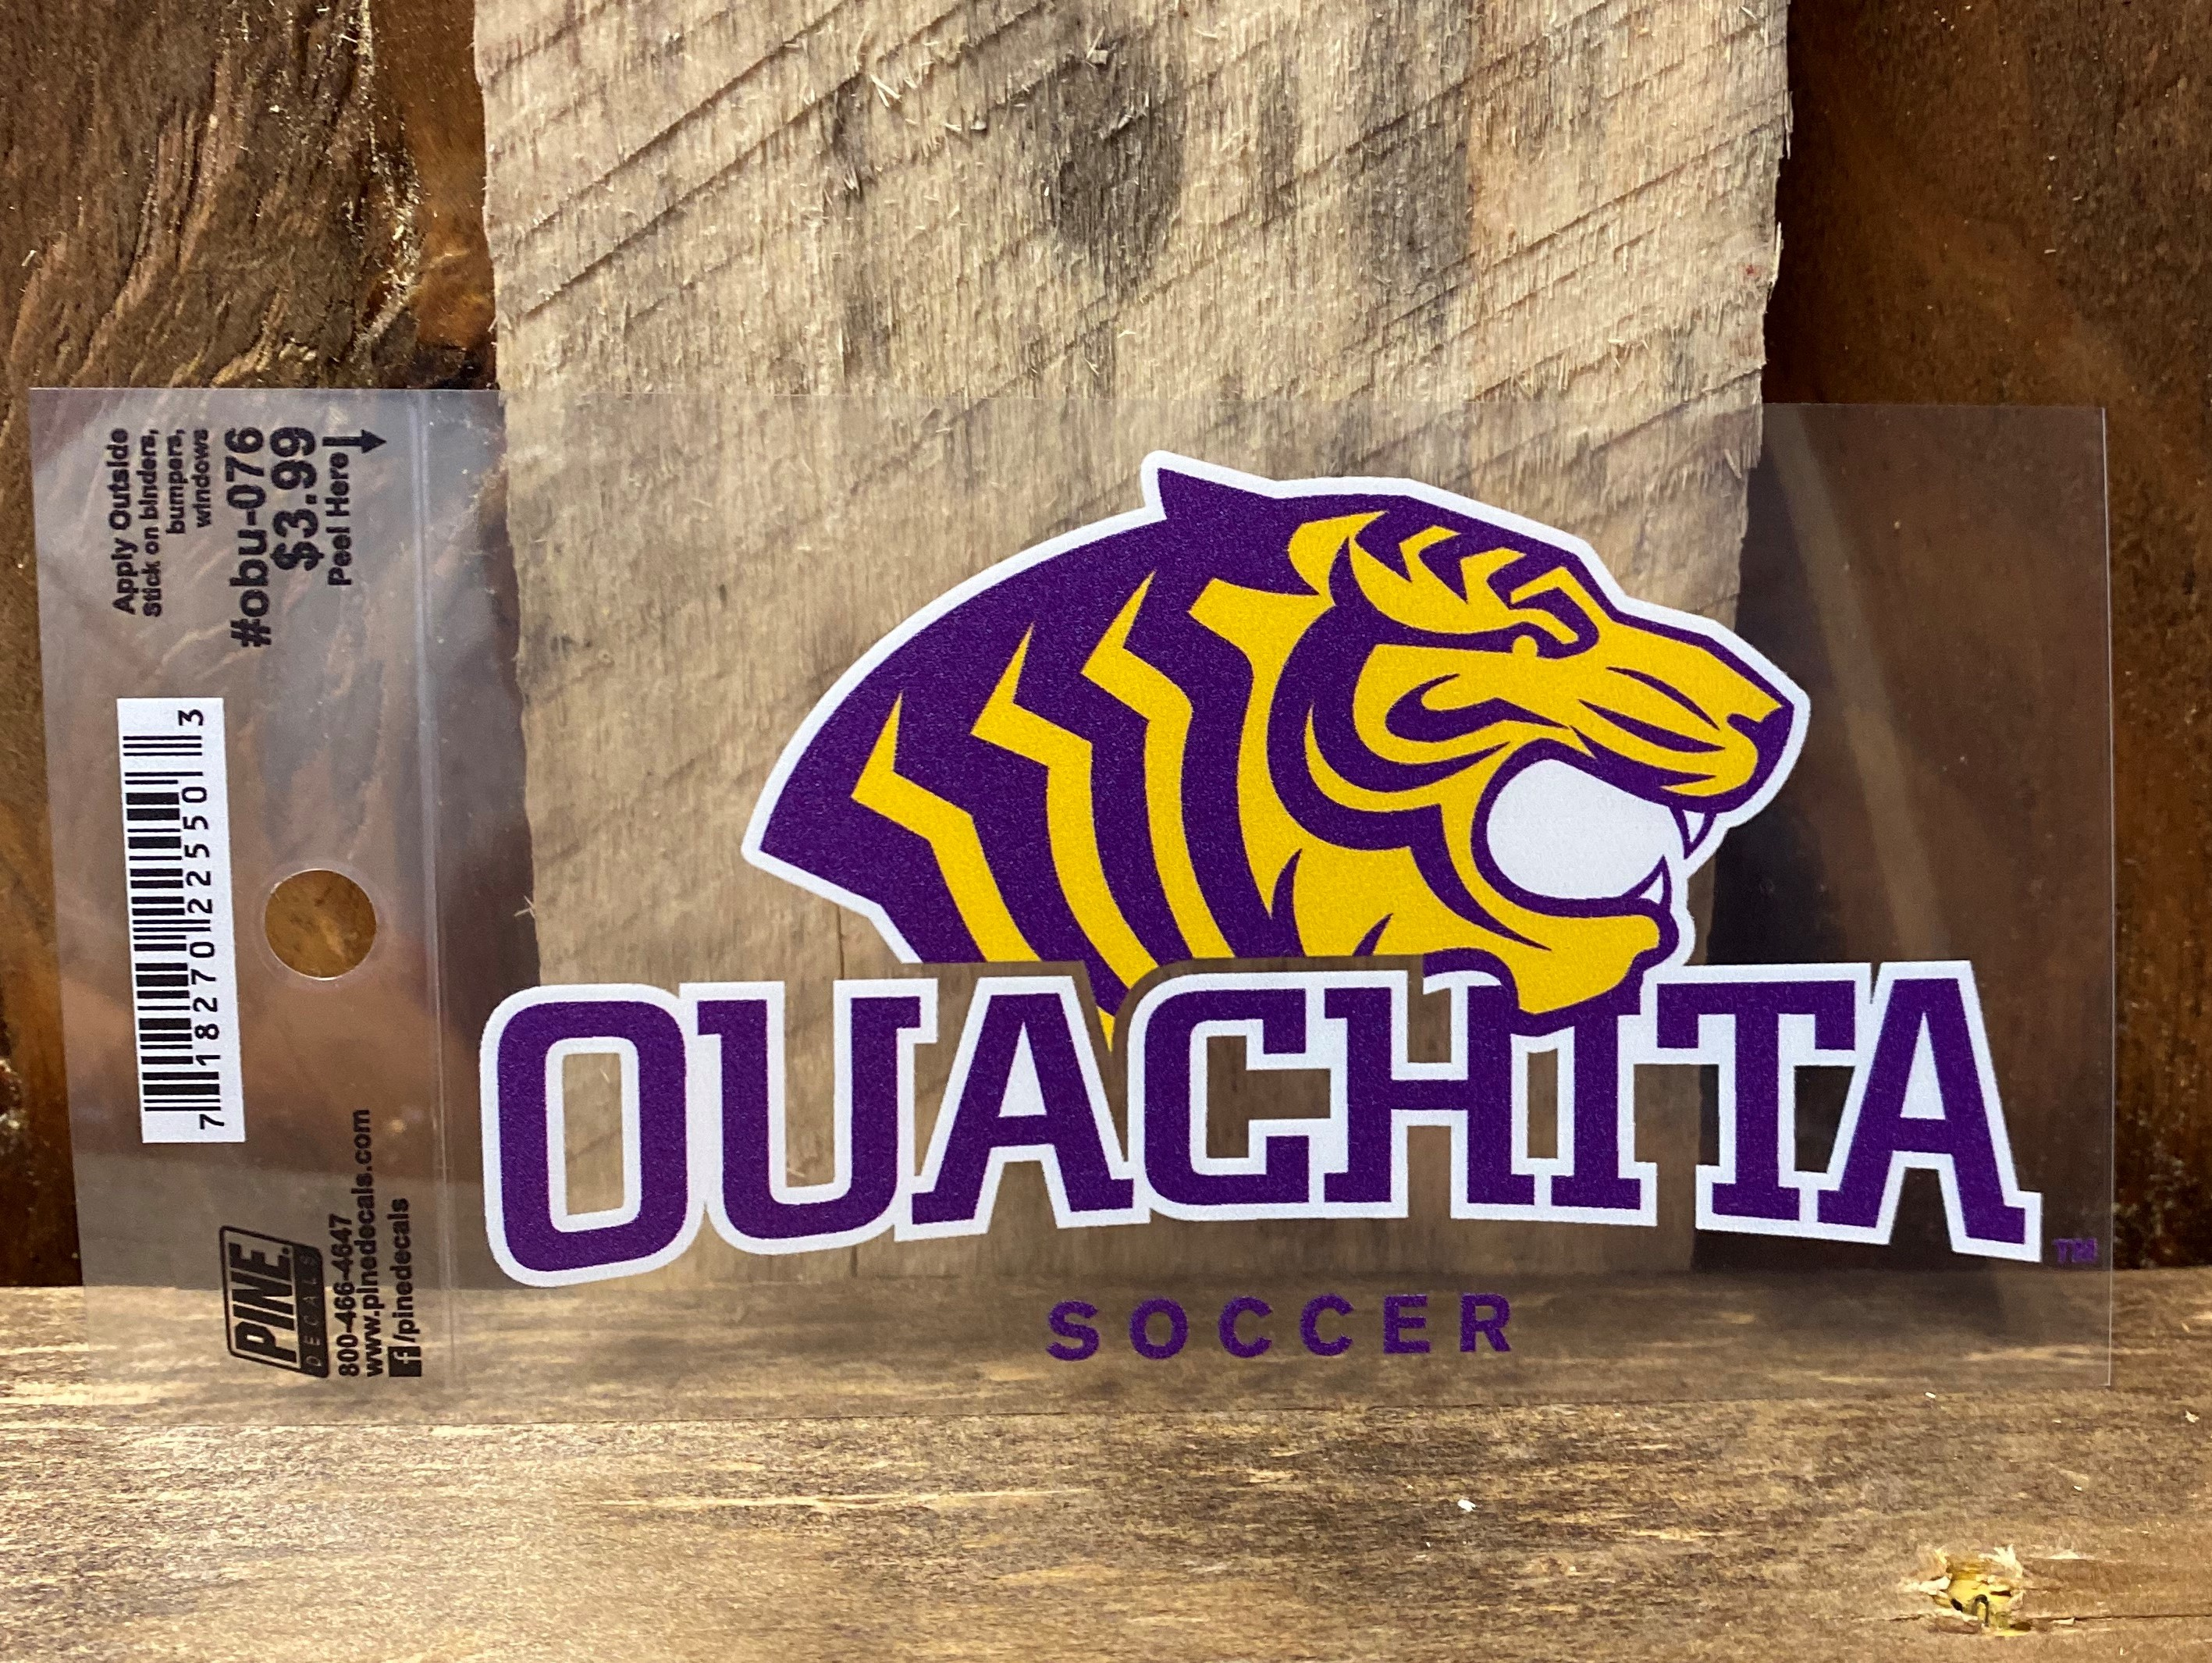 OUACHITA SOCCER CAR DECAL